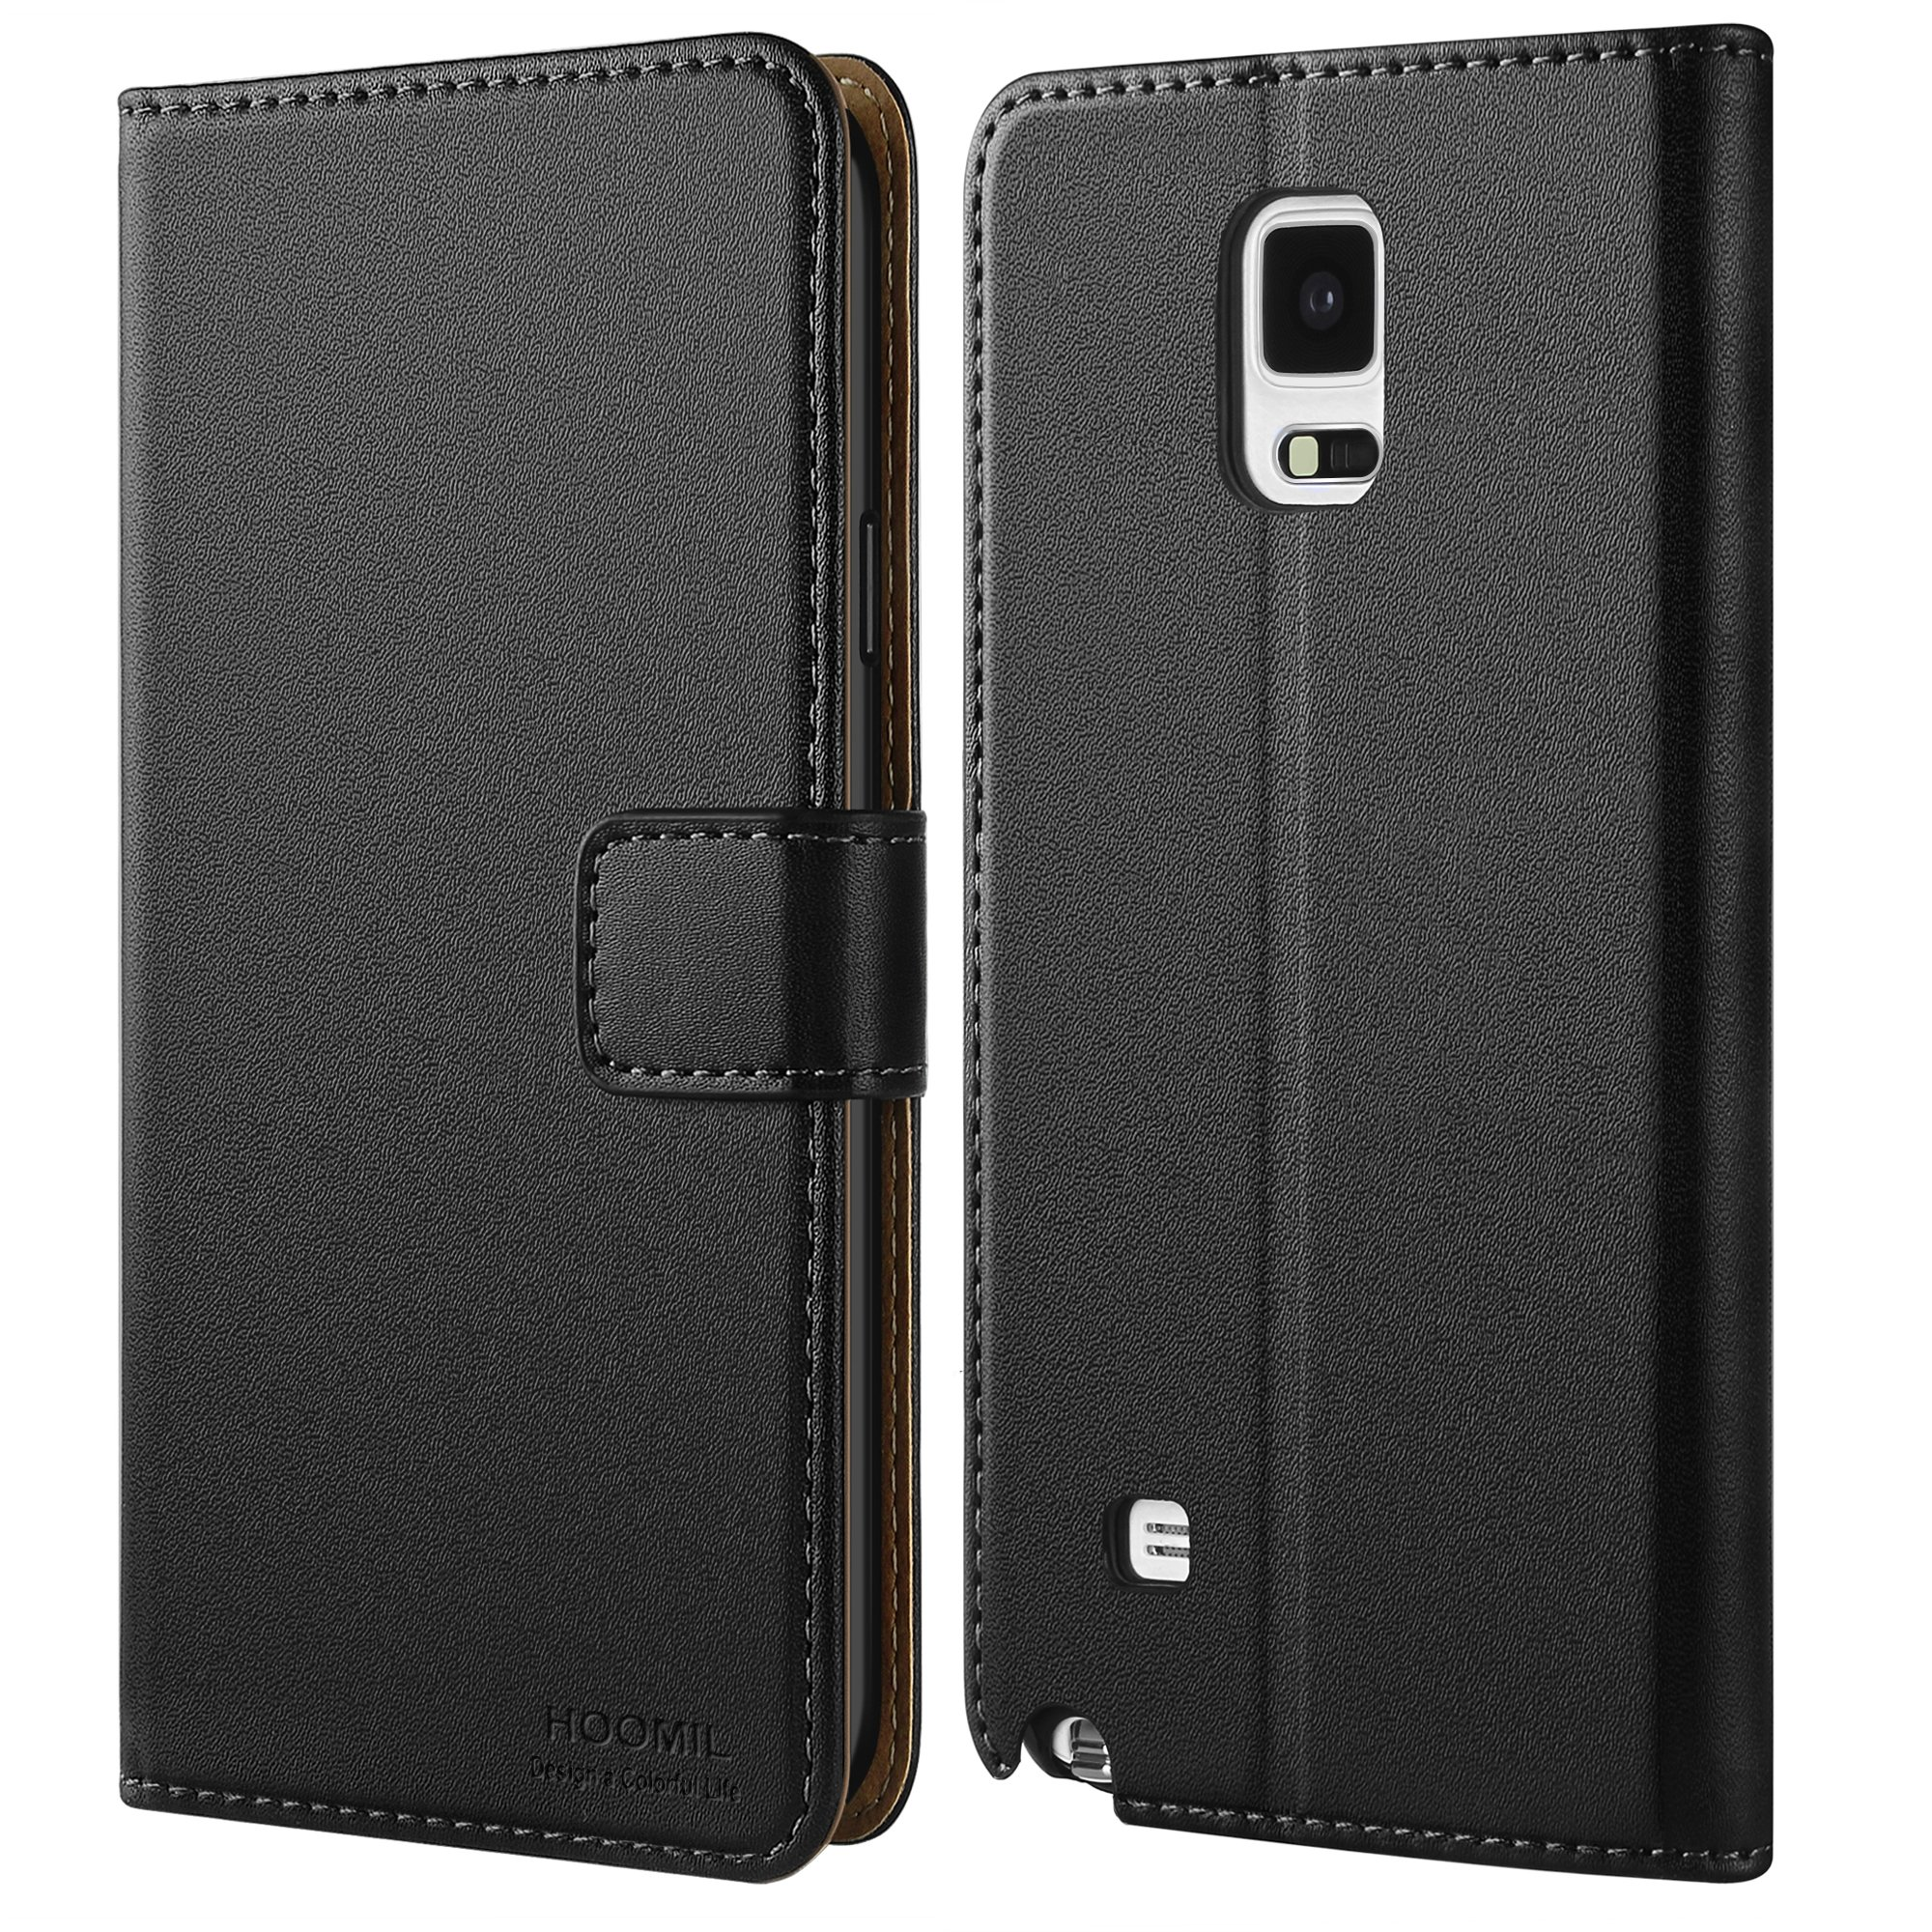 HOOMIL Galaxy Note 4 Case Premium Leather Case Samsung Galaxy Note 4 Phone Wallet Case Cover (Black)